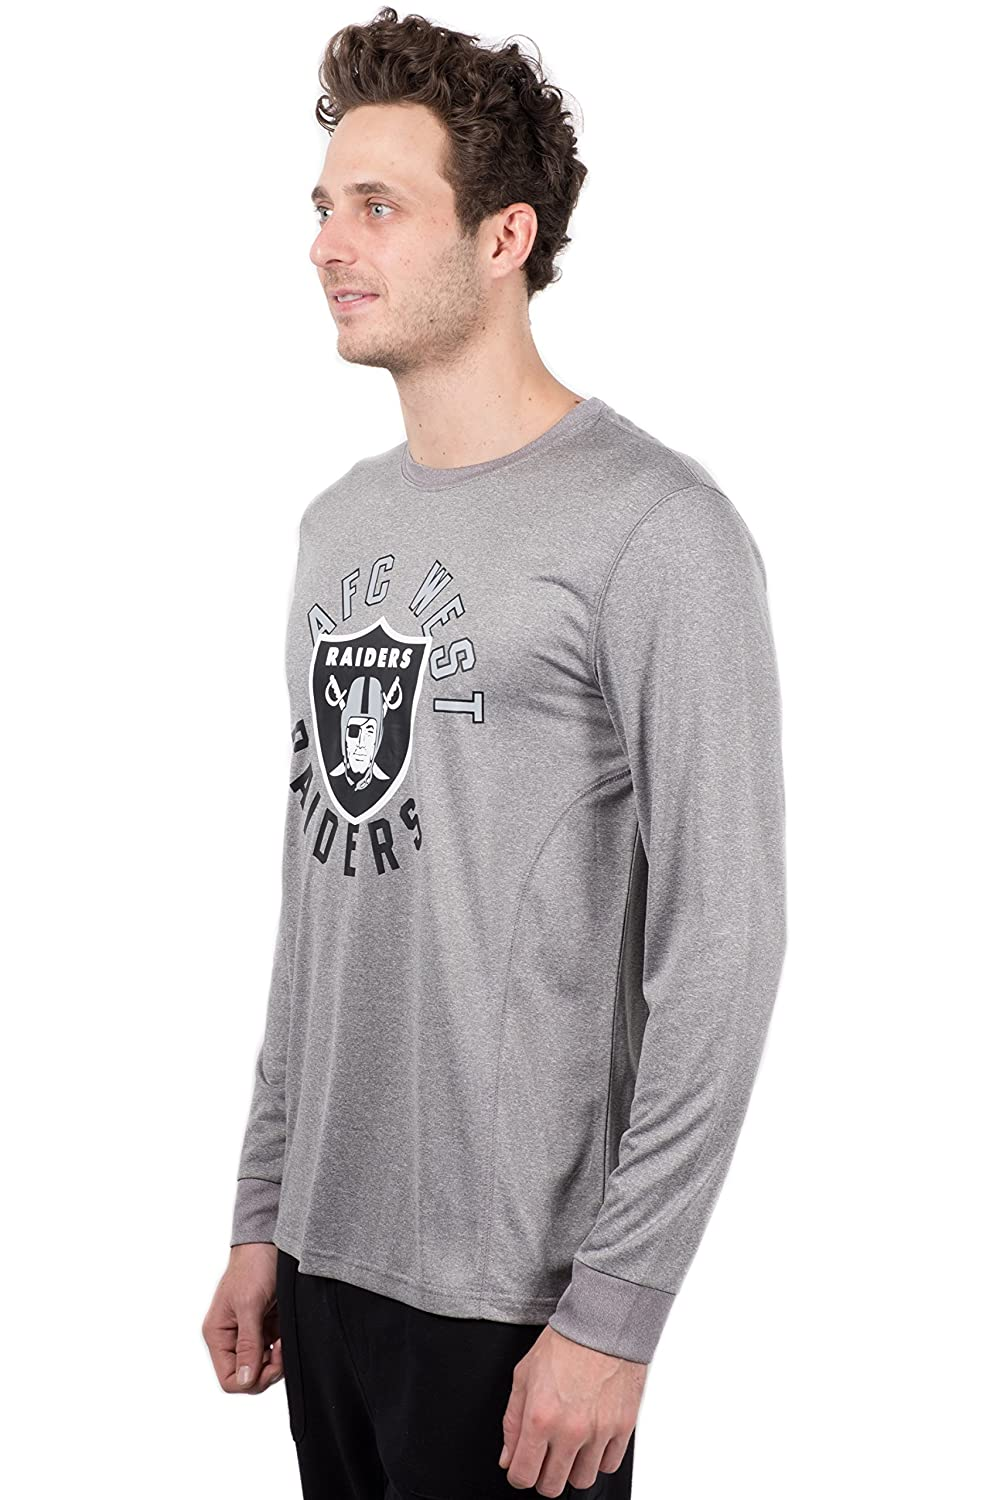 Heather Gray NFL Oakland Raiders Ultra Game Mens LS POLY CREW NECK TEE Small